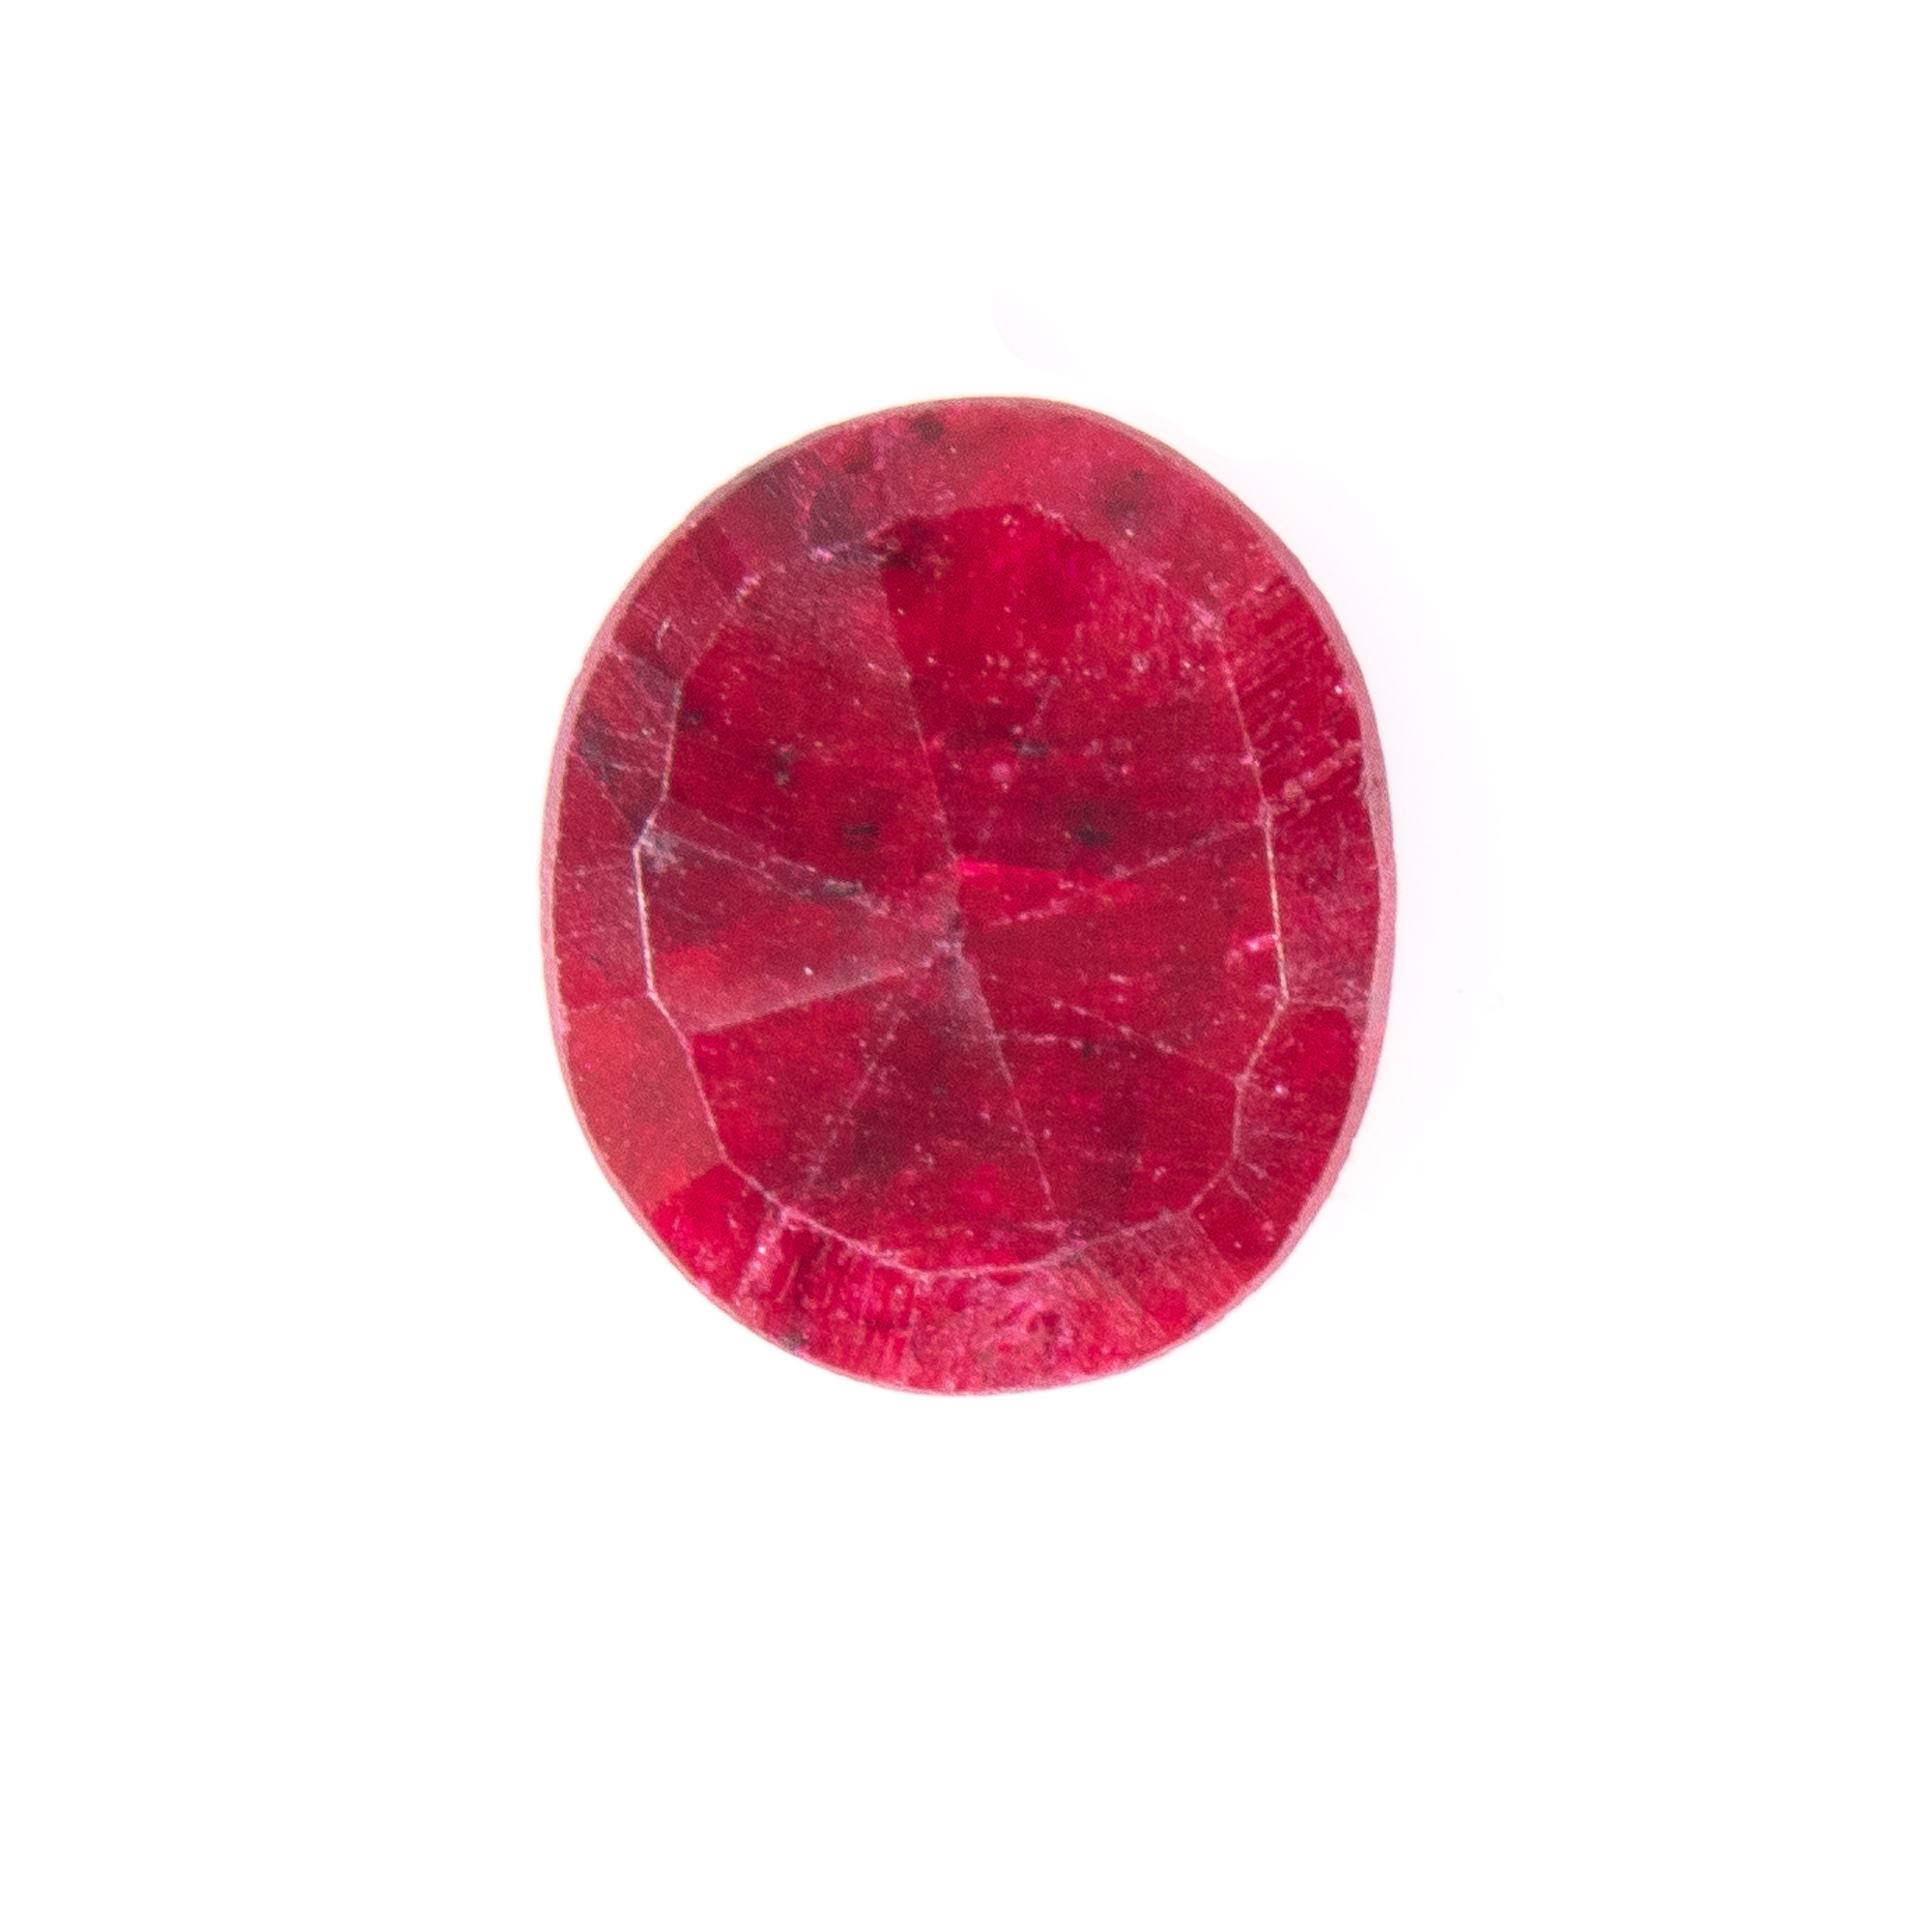 Natural Oval-cut Ruby Gemstone - Image 3 of 6